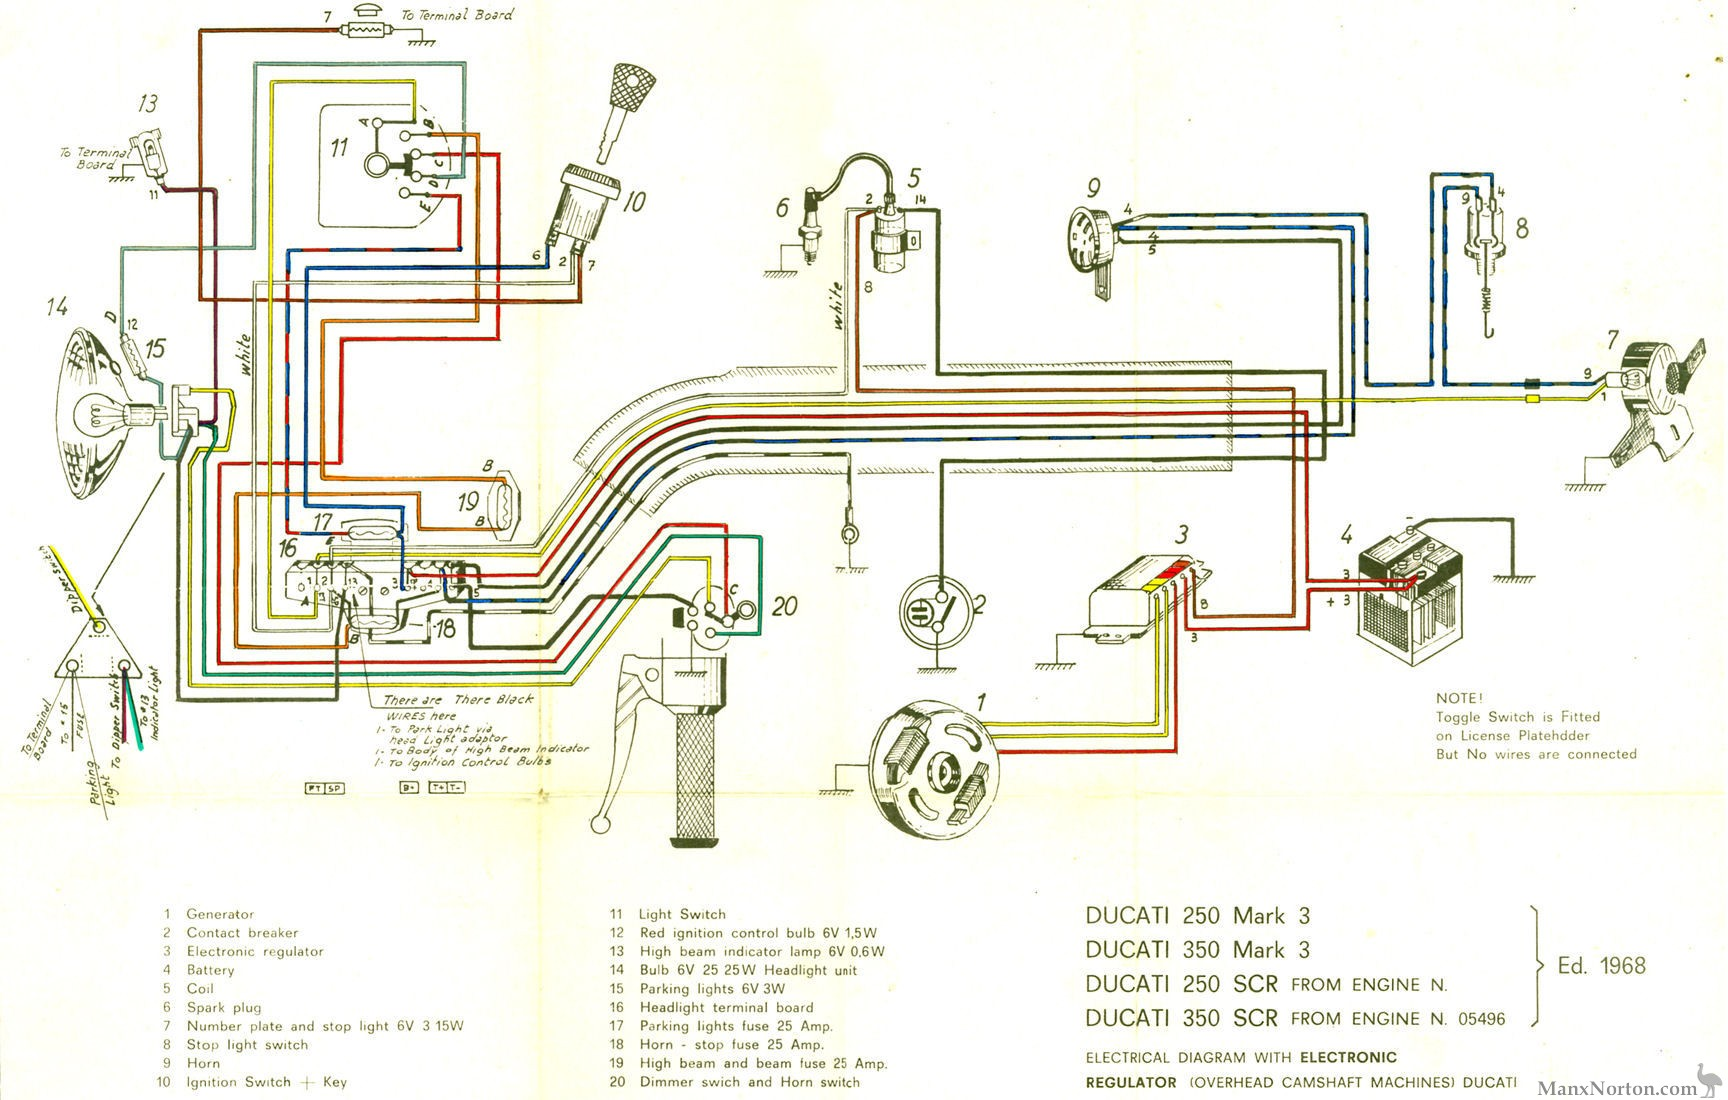 mercury outboard motor wiring diagram images motor starter wiring diagram likewise bass tracker boat wiring diagram